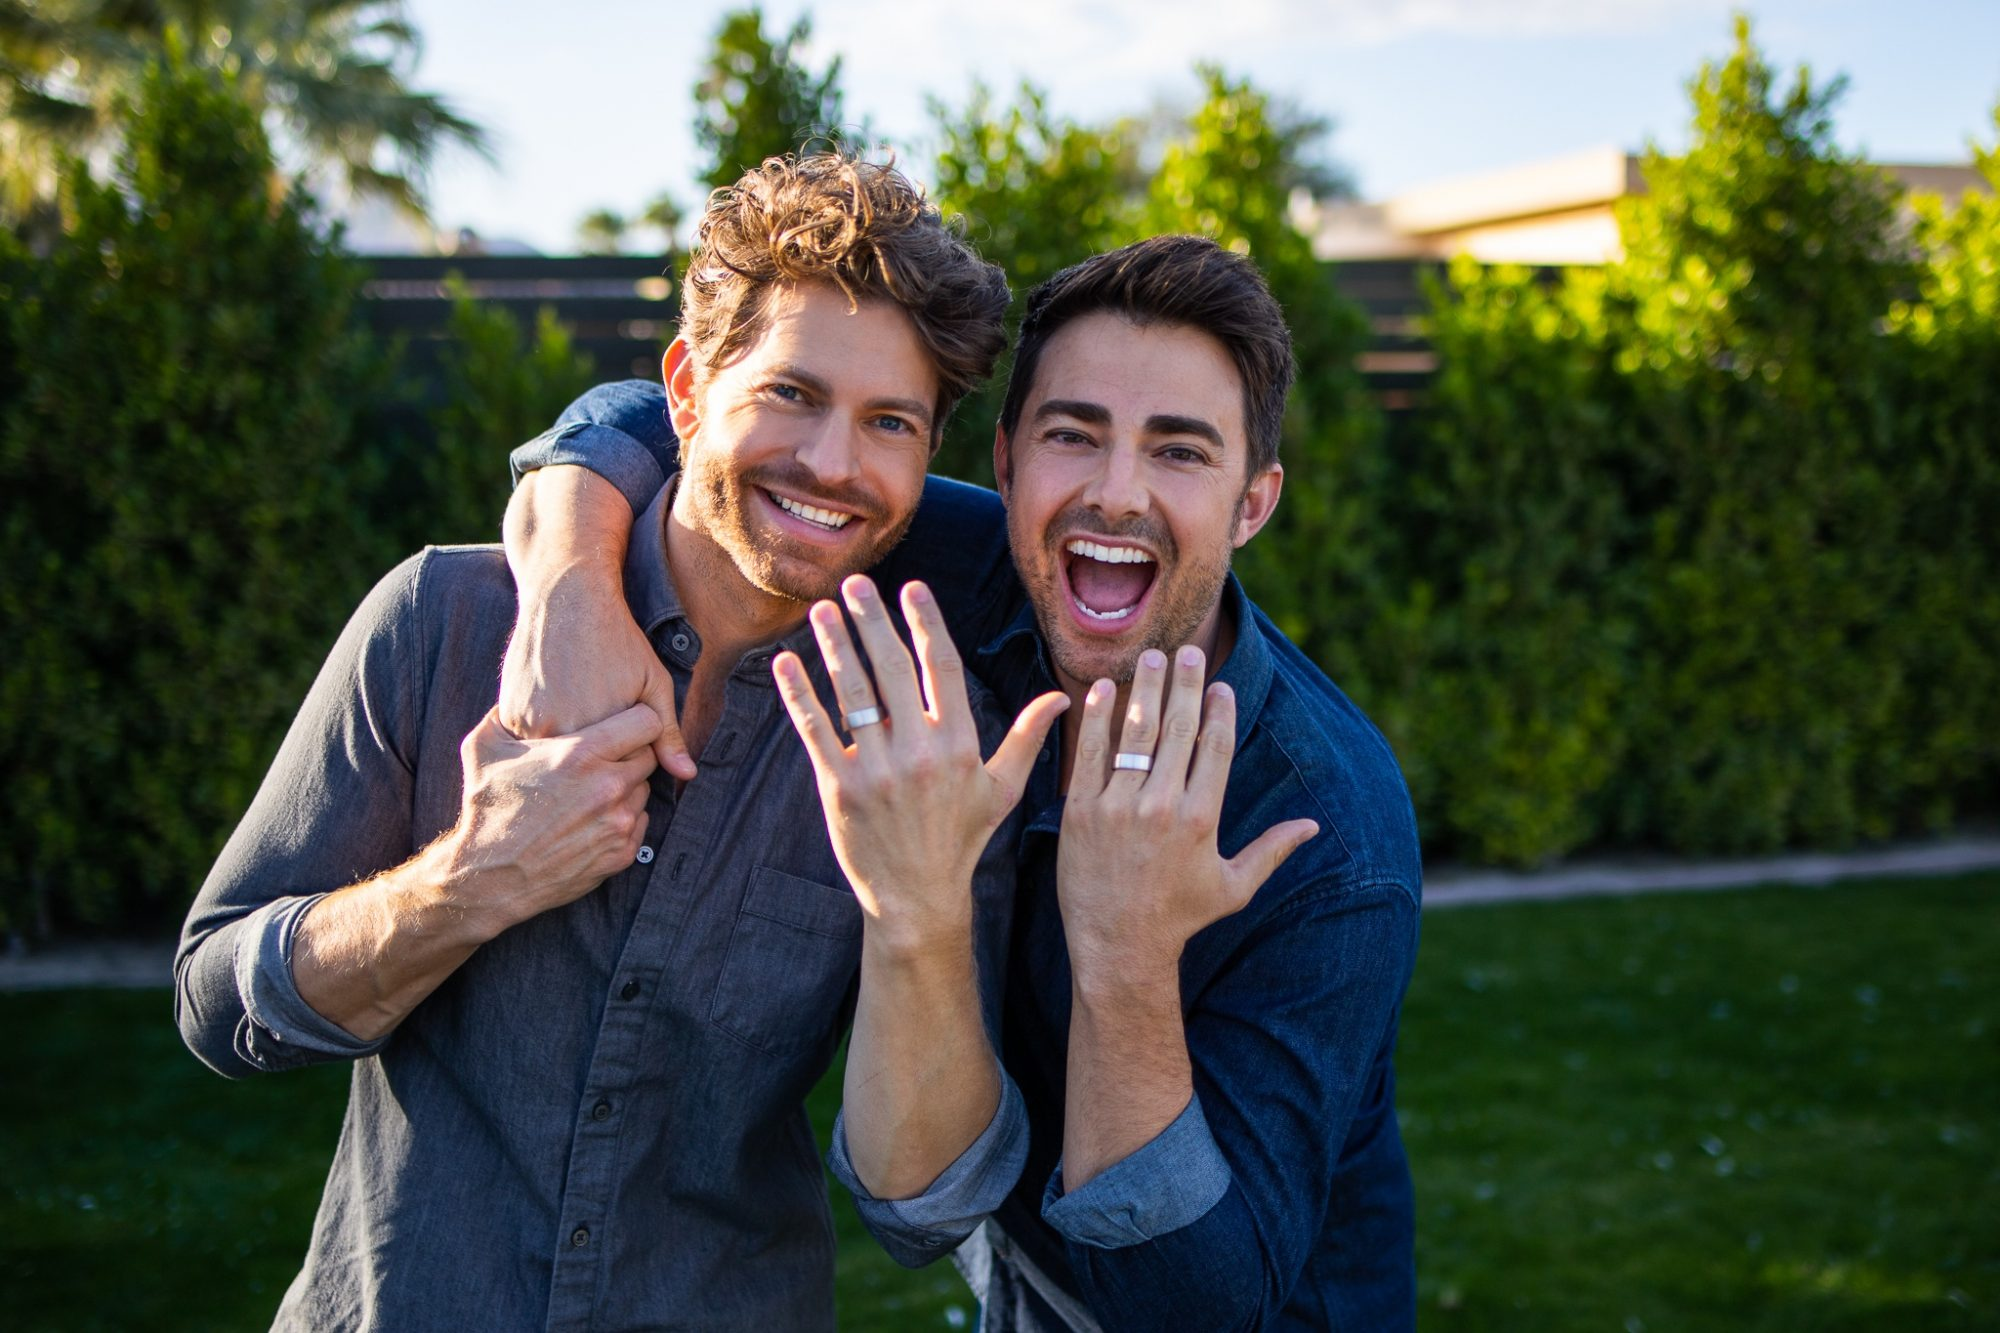 jonathan bennett and jaymes vaughan posing with engagement rings after marriage proposal